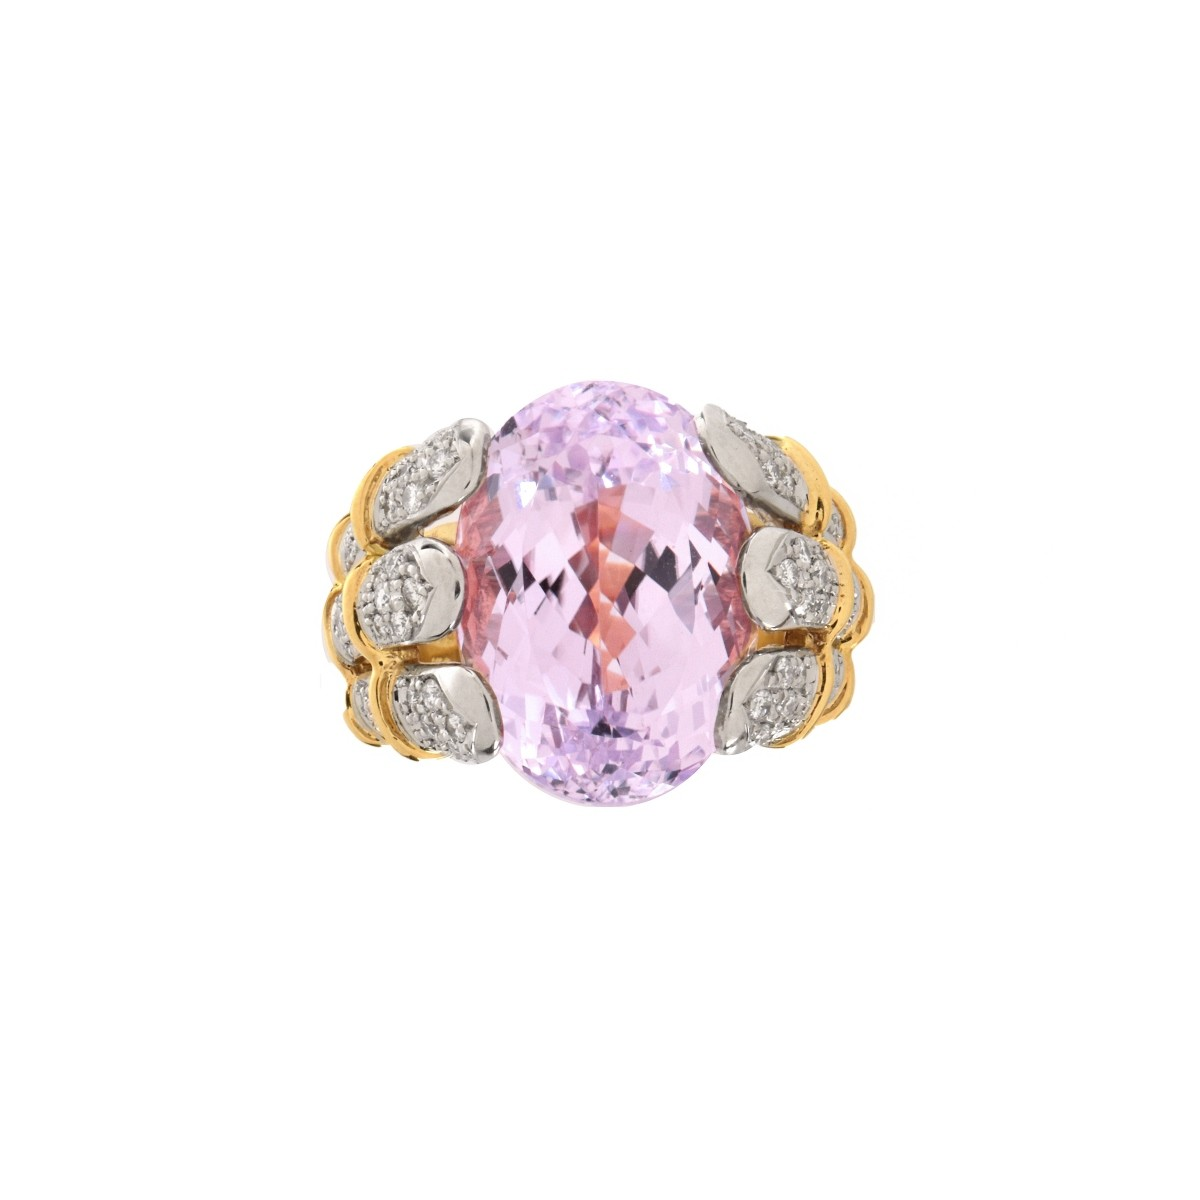 Kunzite, Diamond and 18K Ring